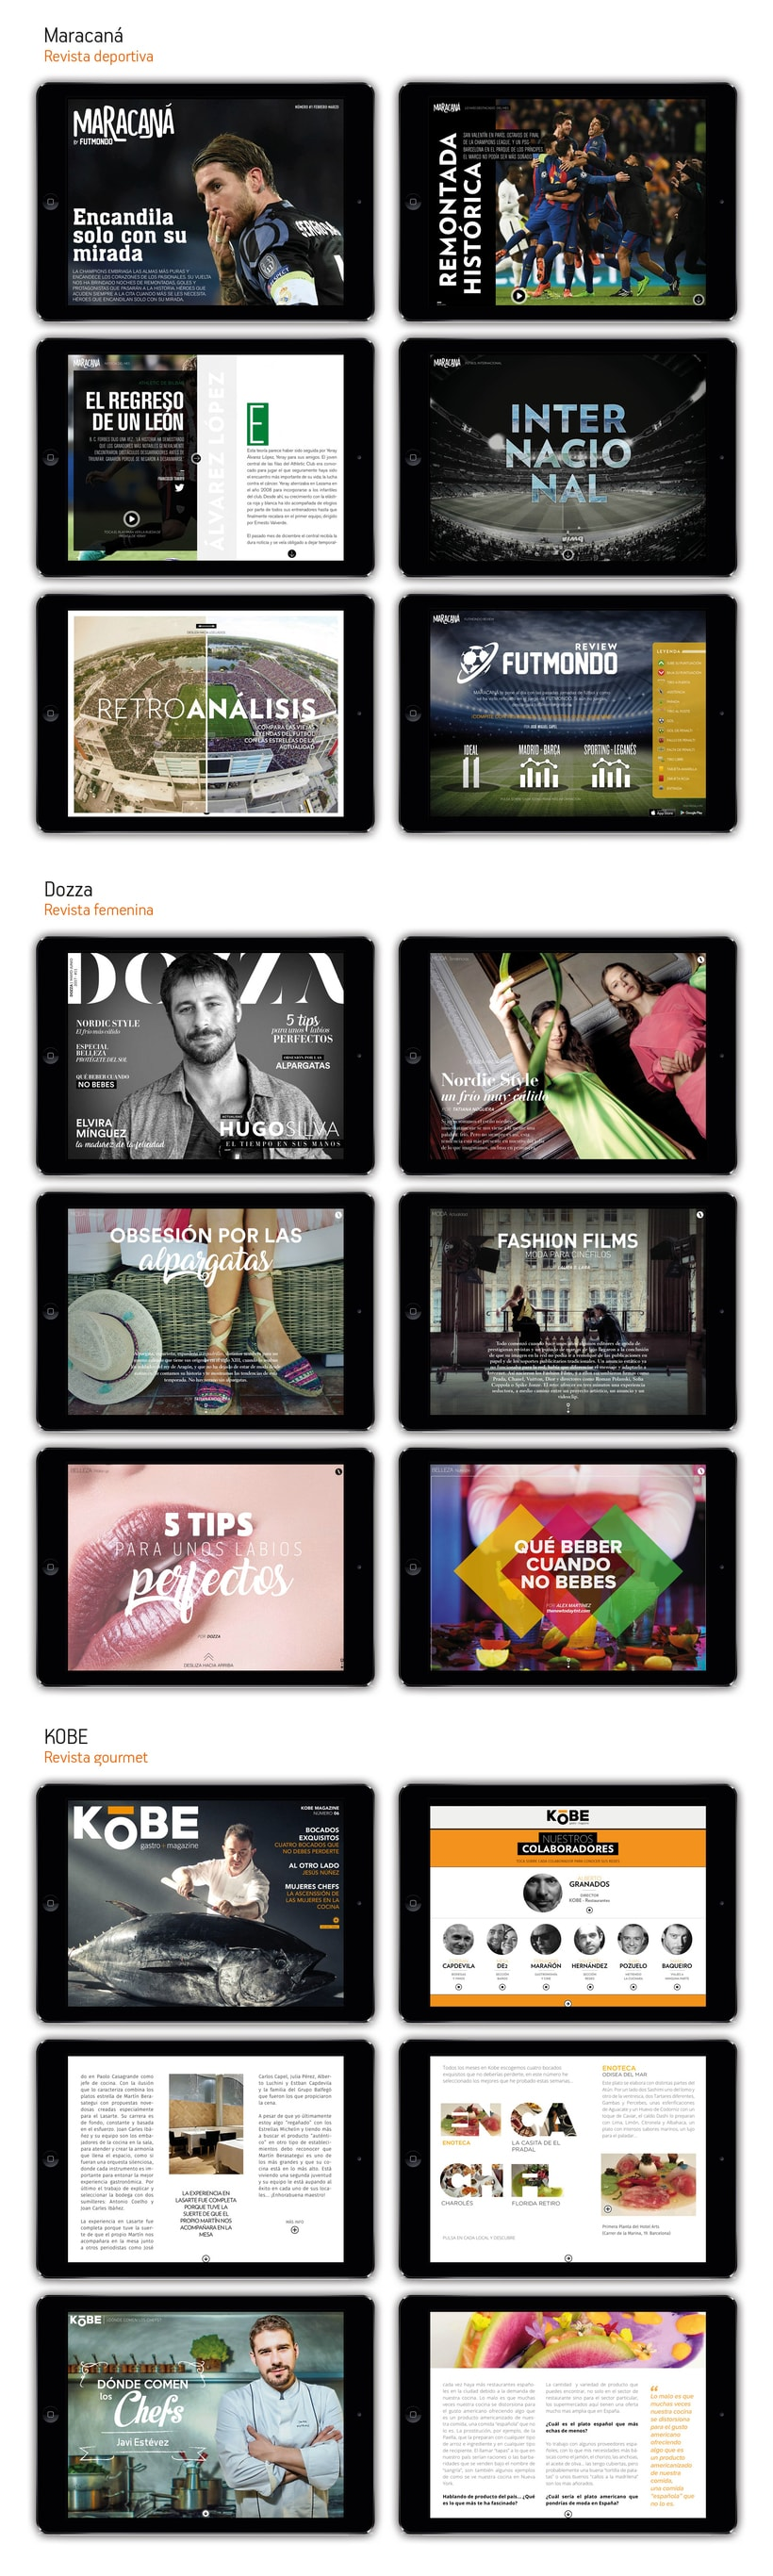 Editorial Interactiva / MAGVIEW 2